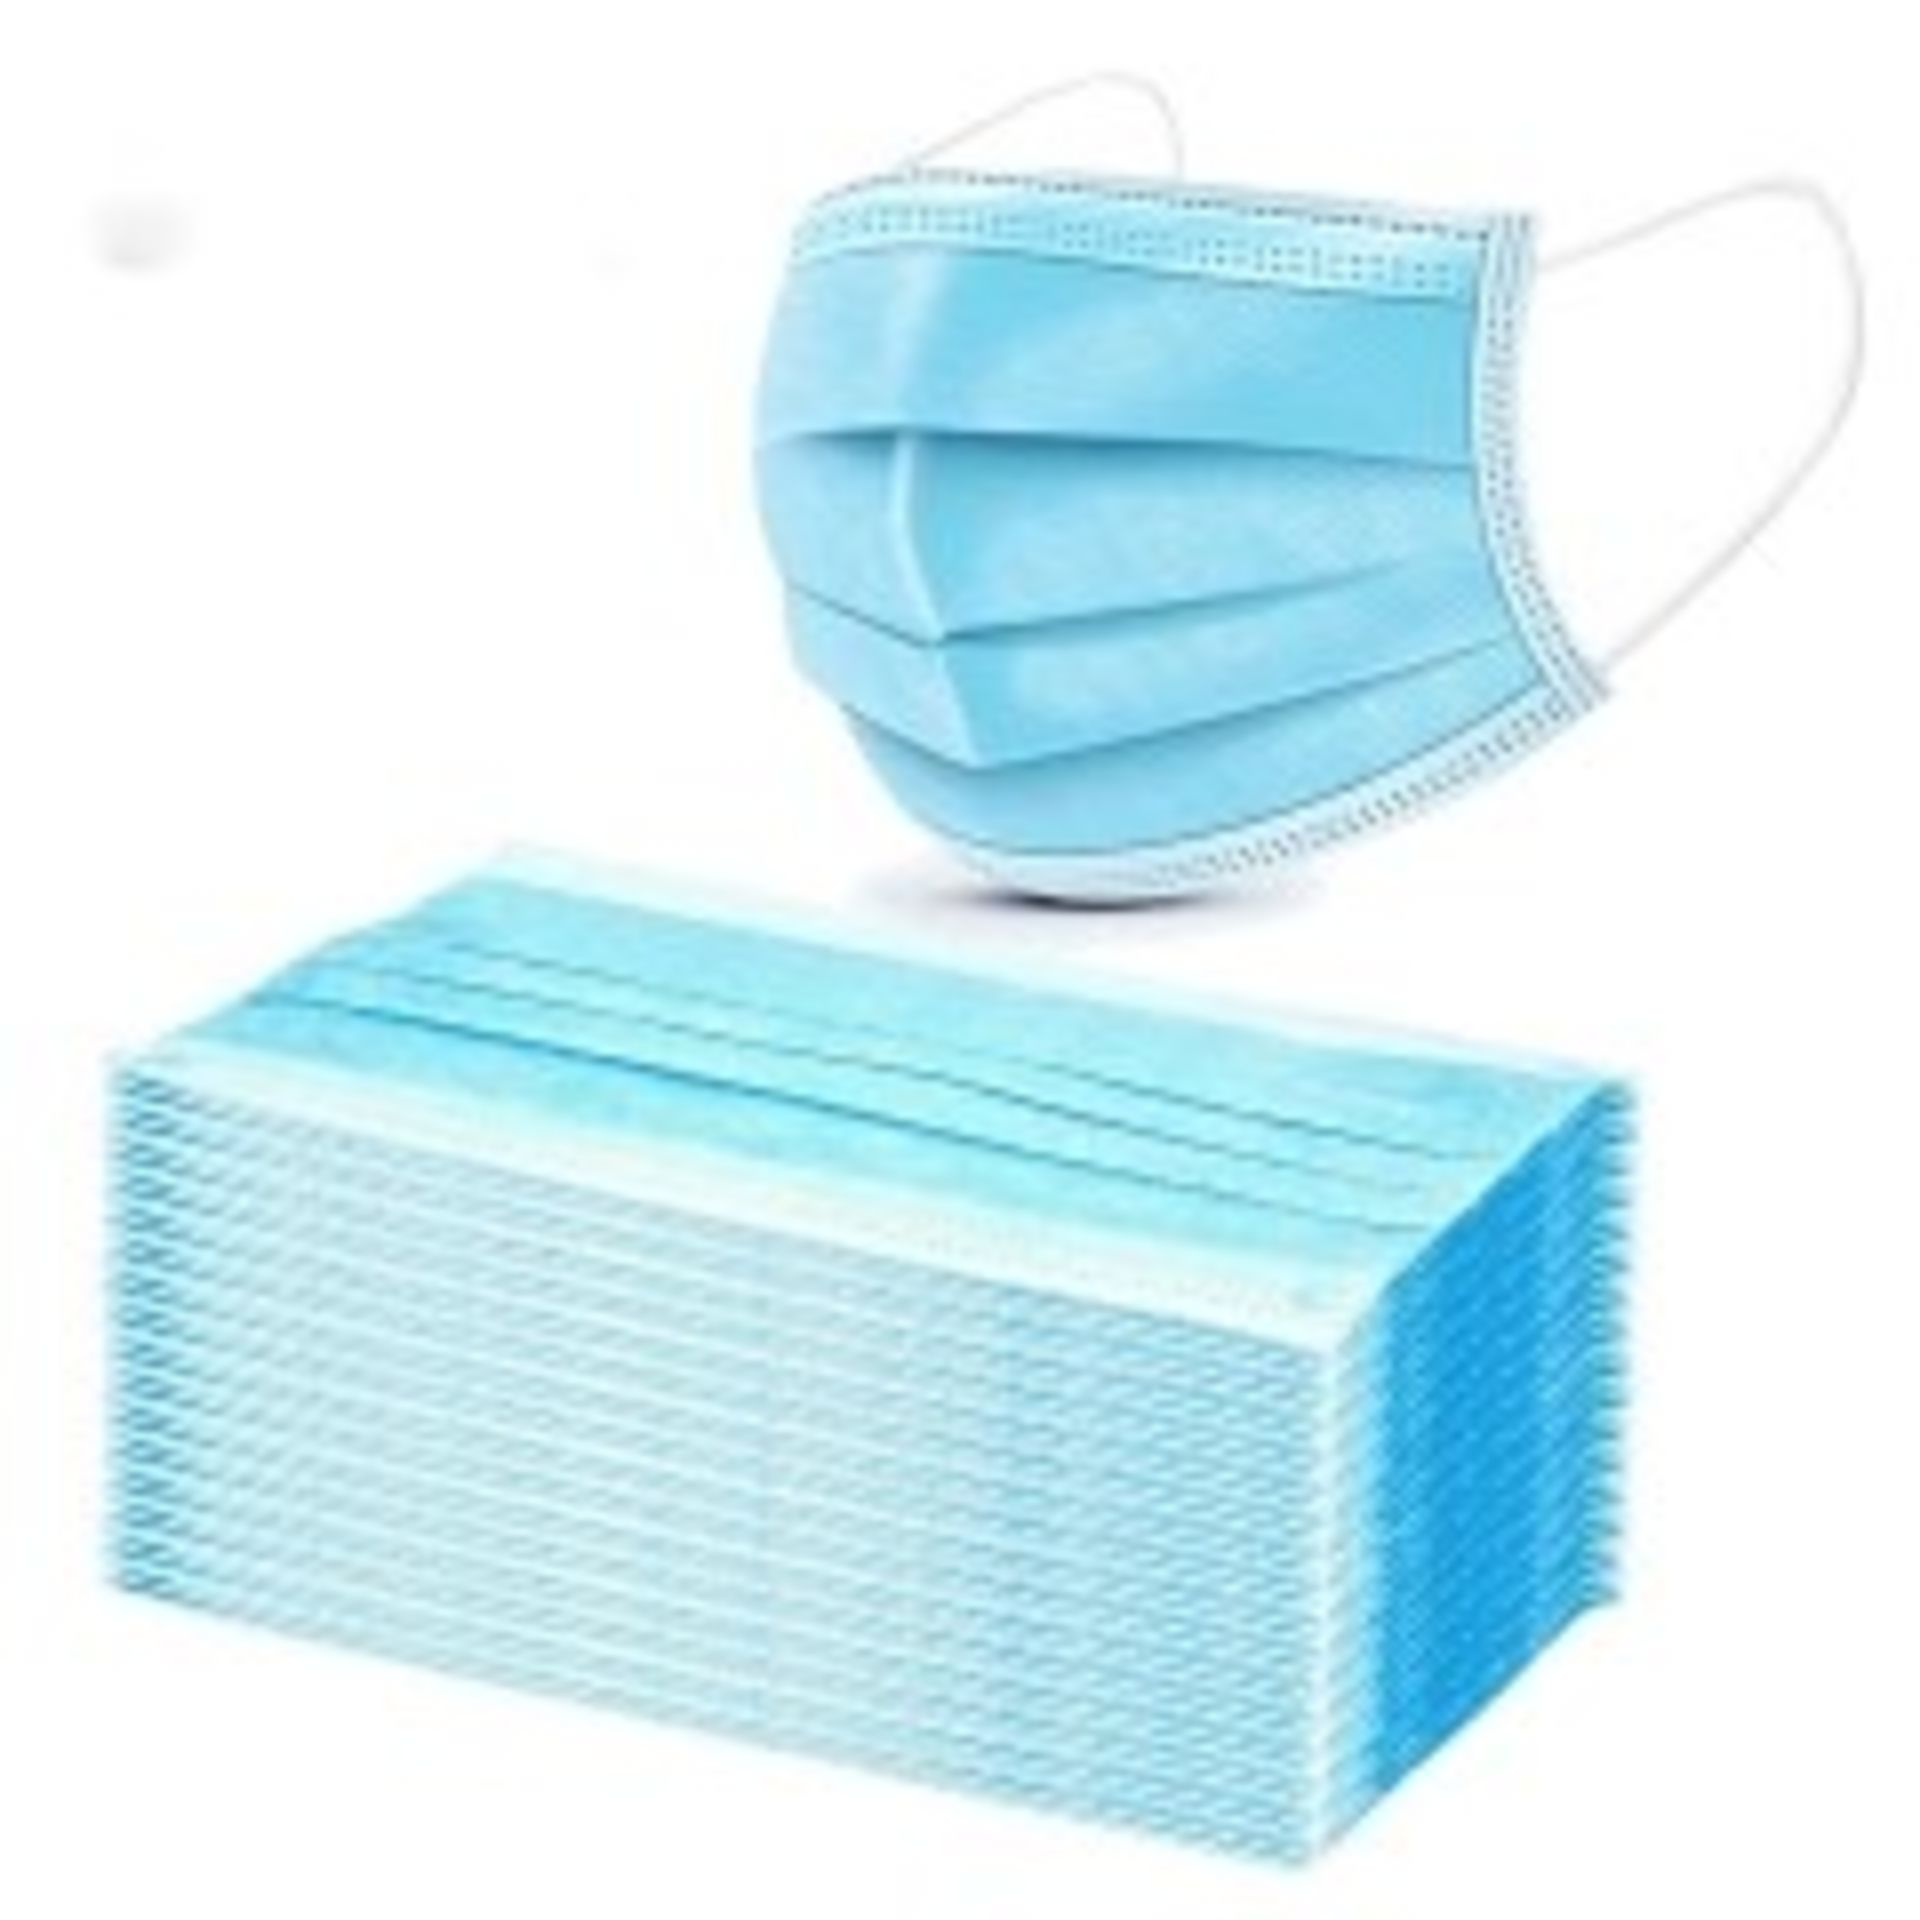 500 IN TOTAL 3 X PLY DISPOSABLE FACE MASKS *NO VAT* - Image 3 of 3